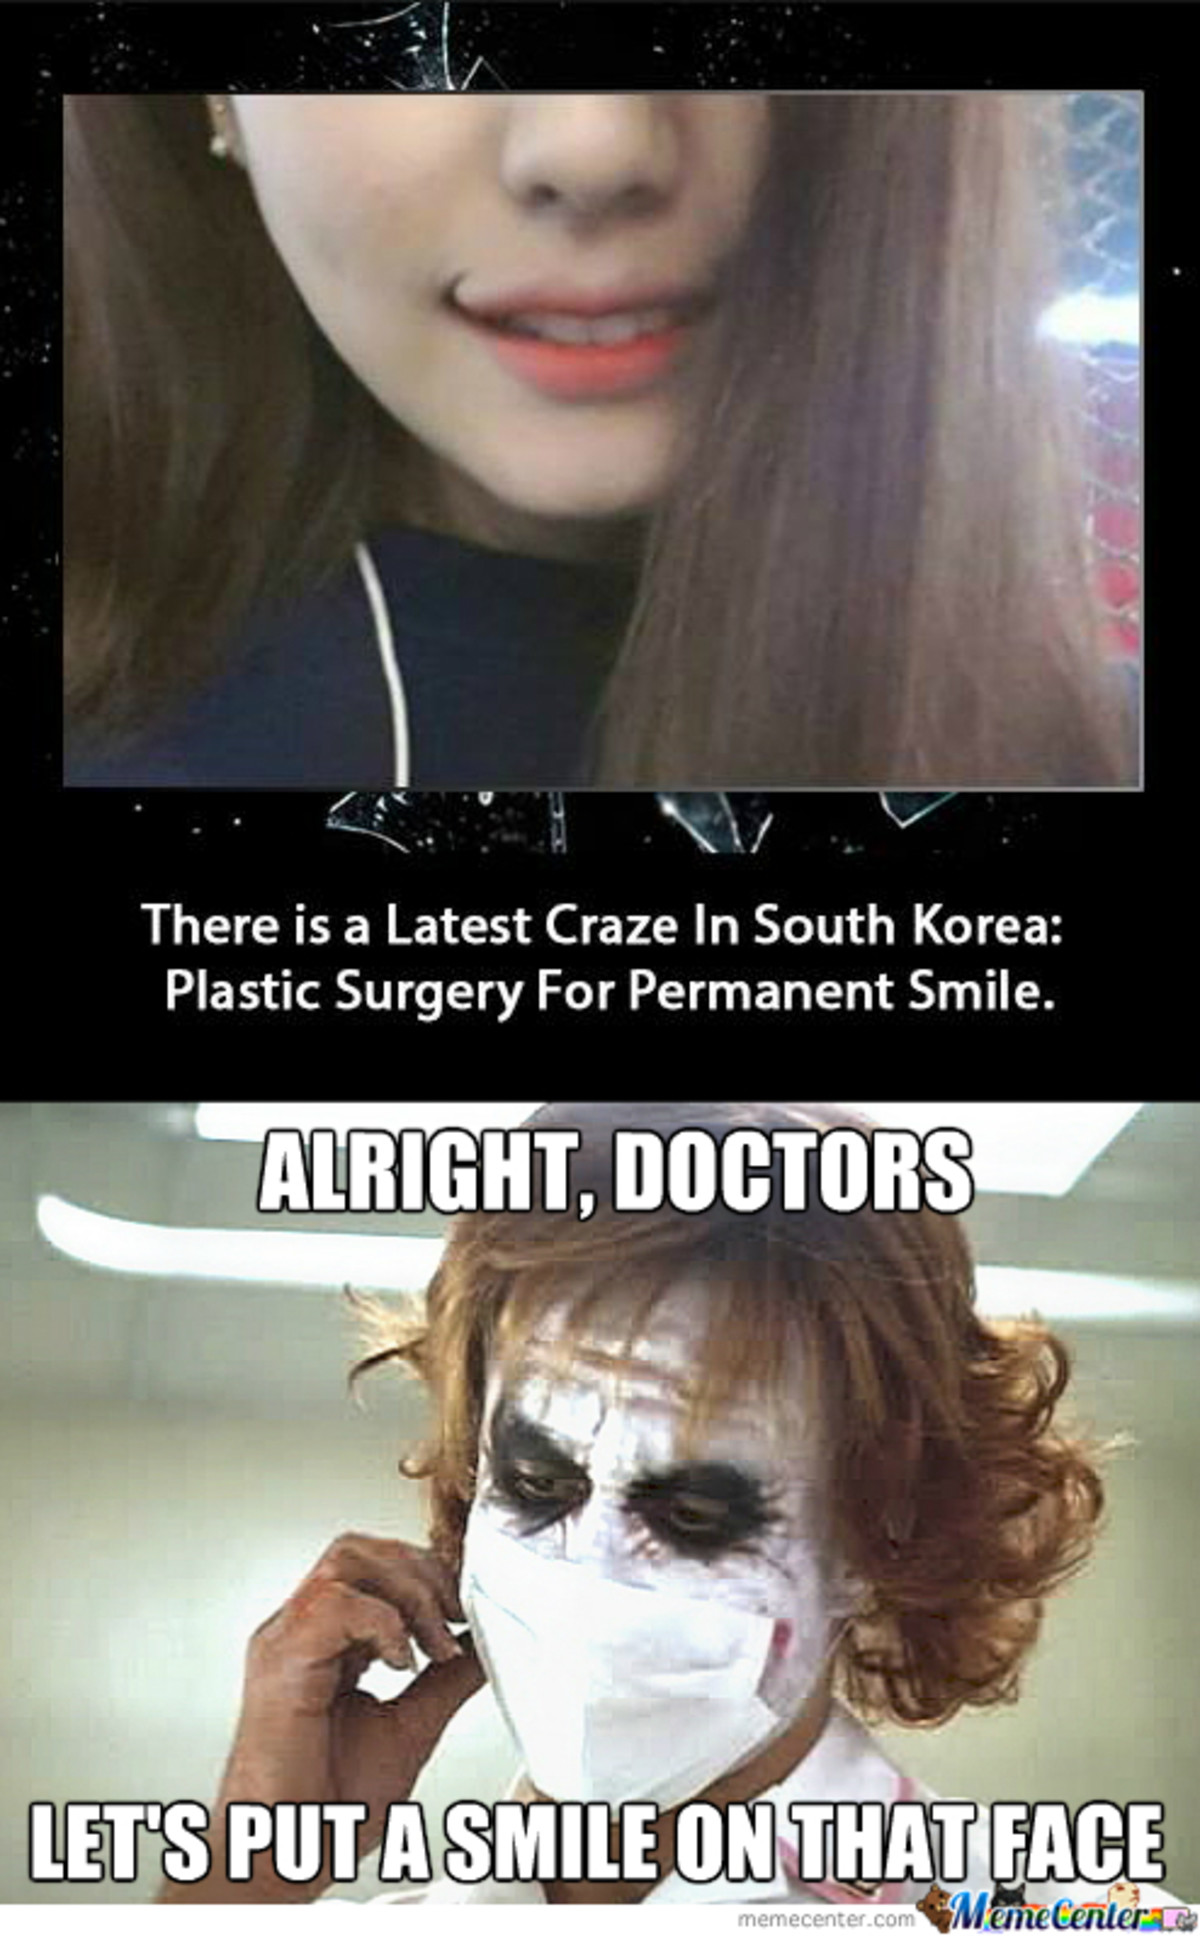 Korea Society. .. 3 months from now when the trend pass they will looks even more retarded. tho in korea surgery is as easy as taking a pill. so as long as you can affort it. you